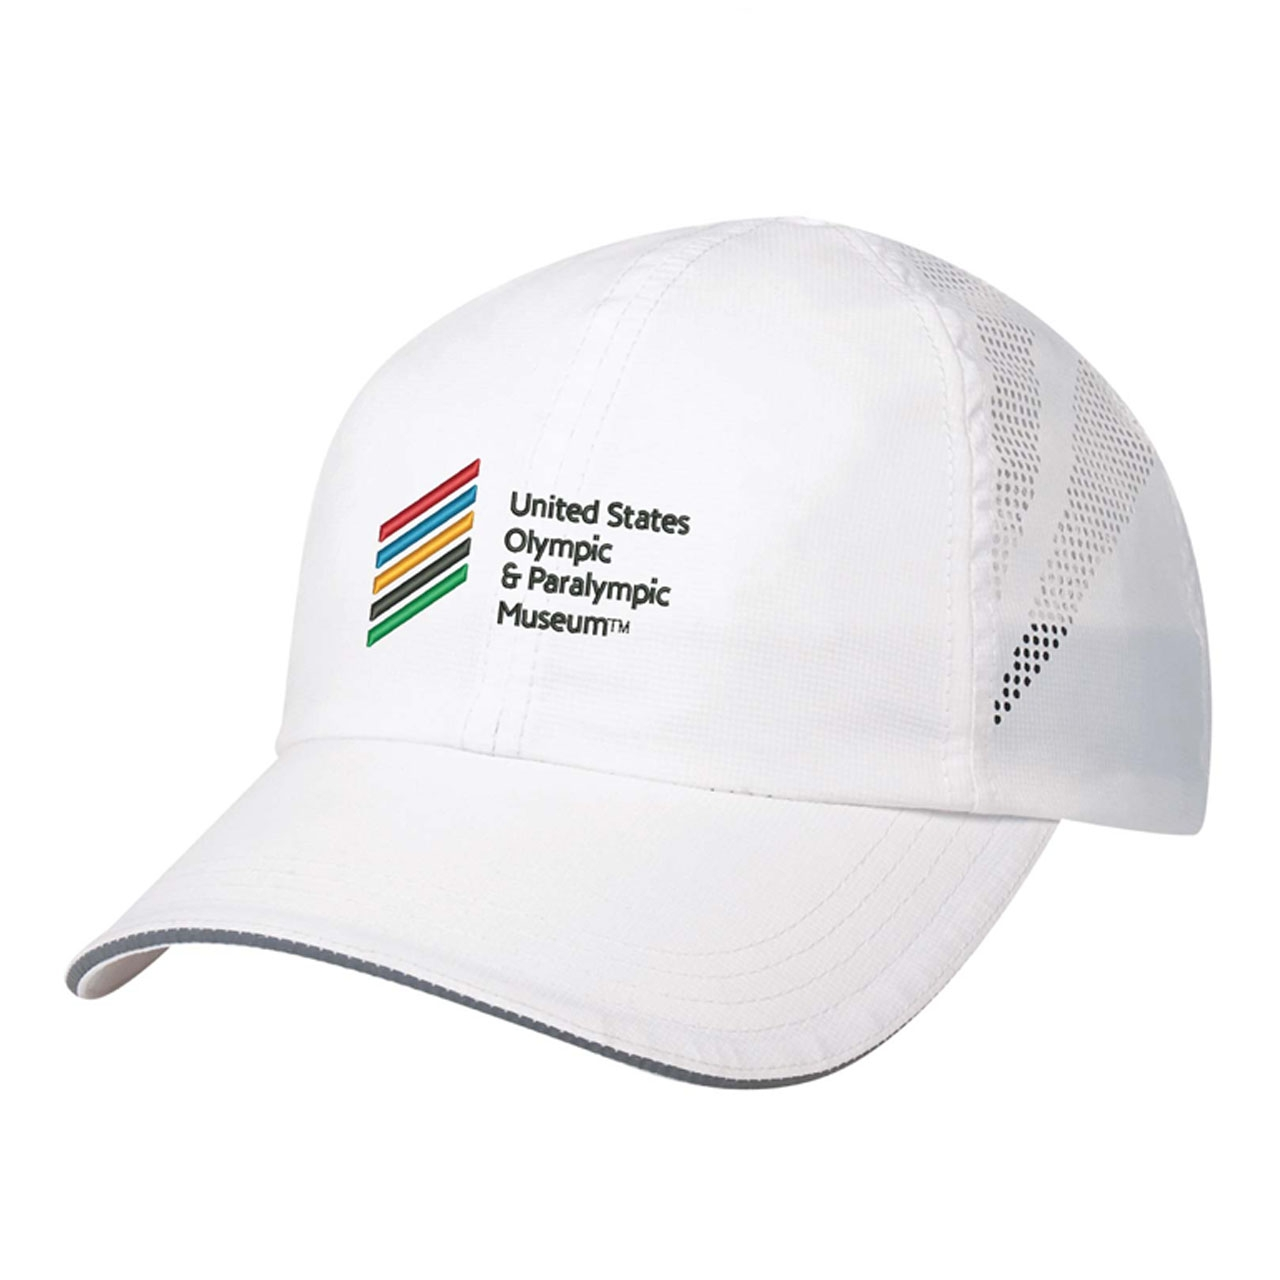 ADULT WHITE USOPM LOGO HAT